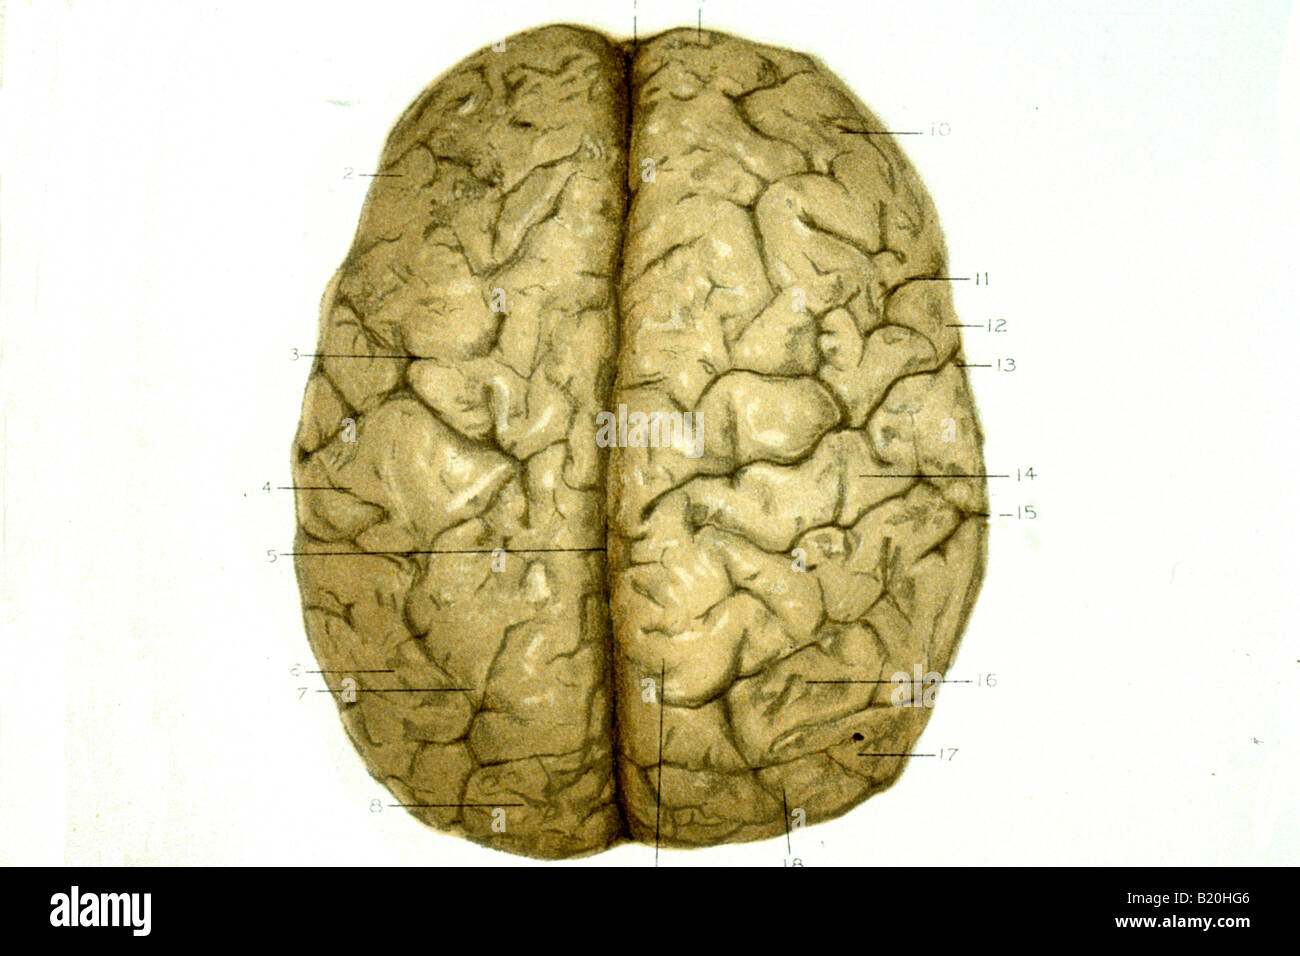 Brain Surface Anatomy Stock Photos & Brain Surface Anatomy Stock ...